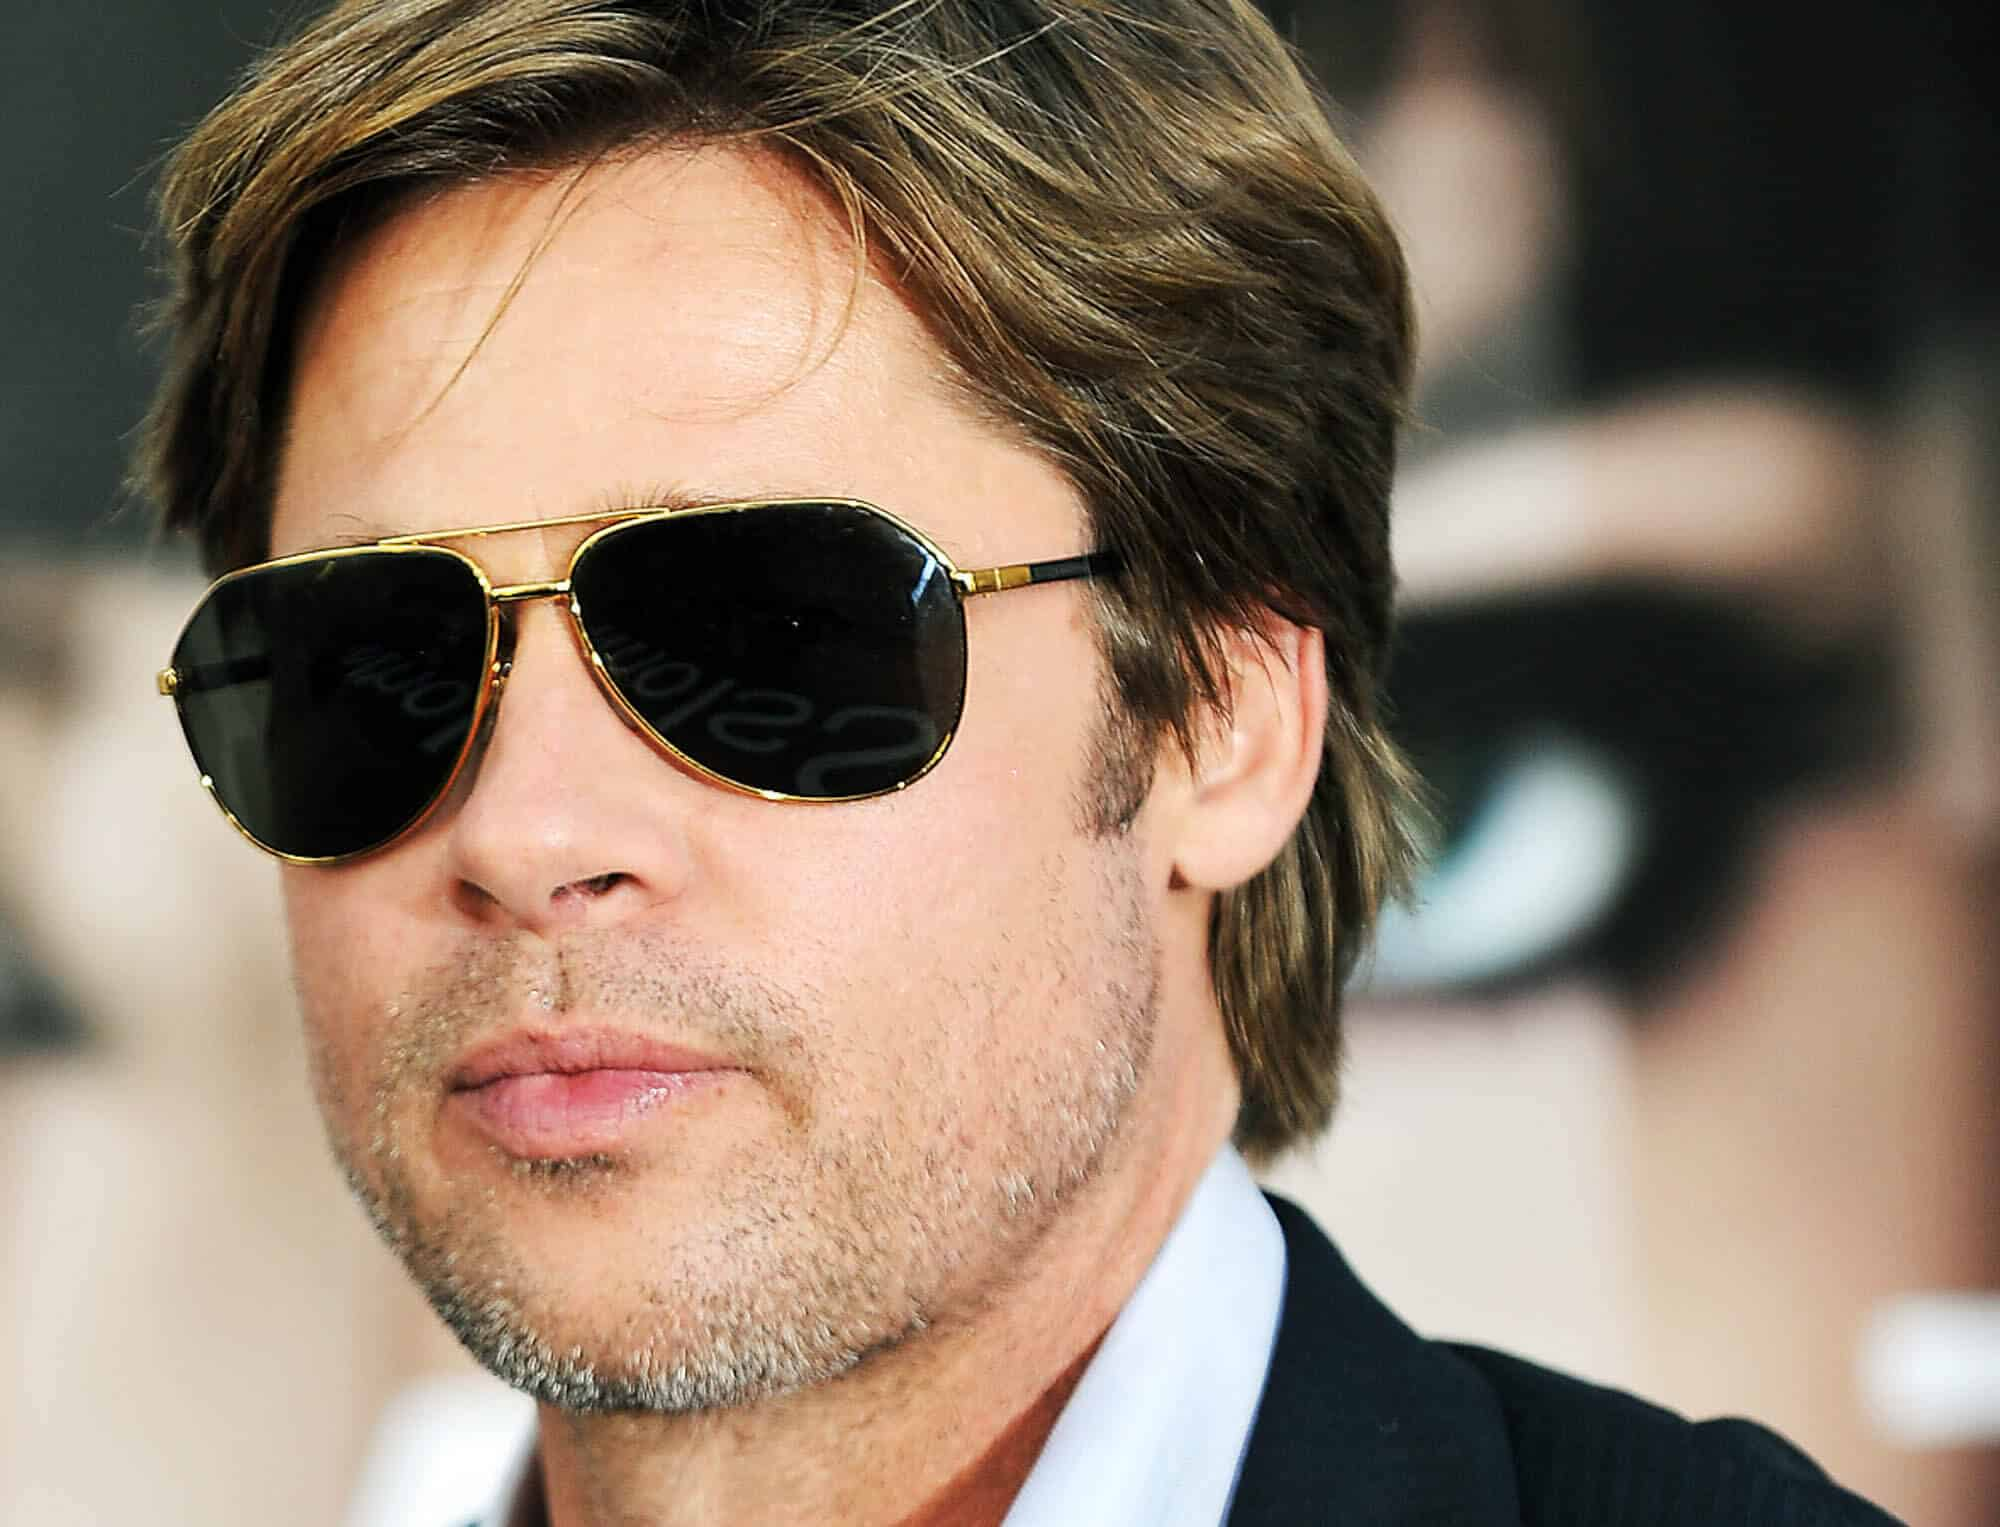 Top 10 Sunglasses Trends Approved by Celebrities - The ...